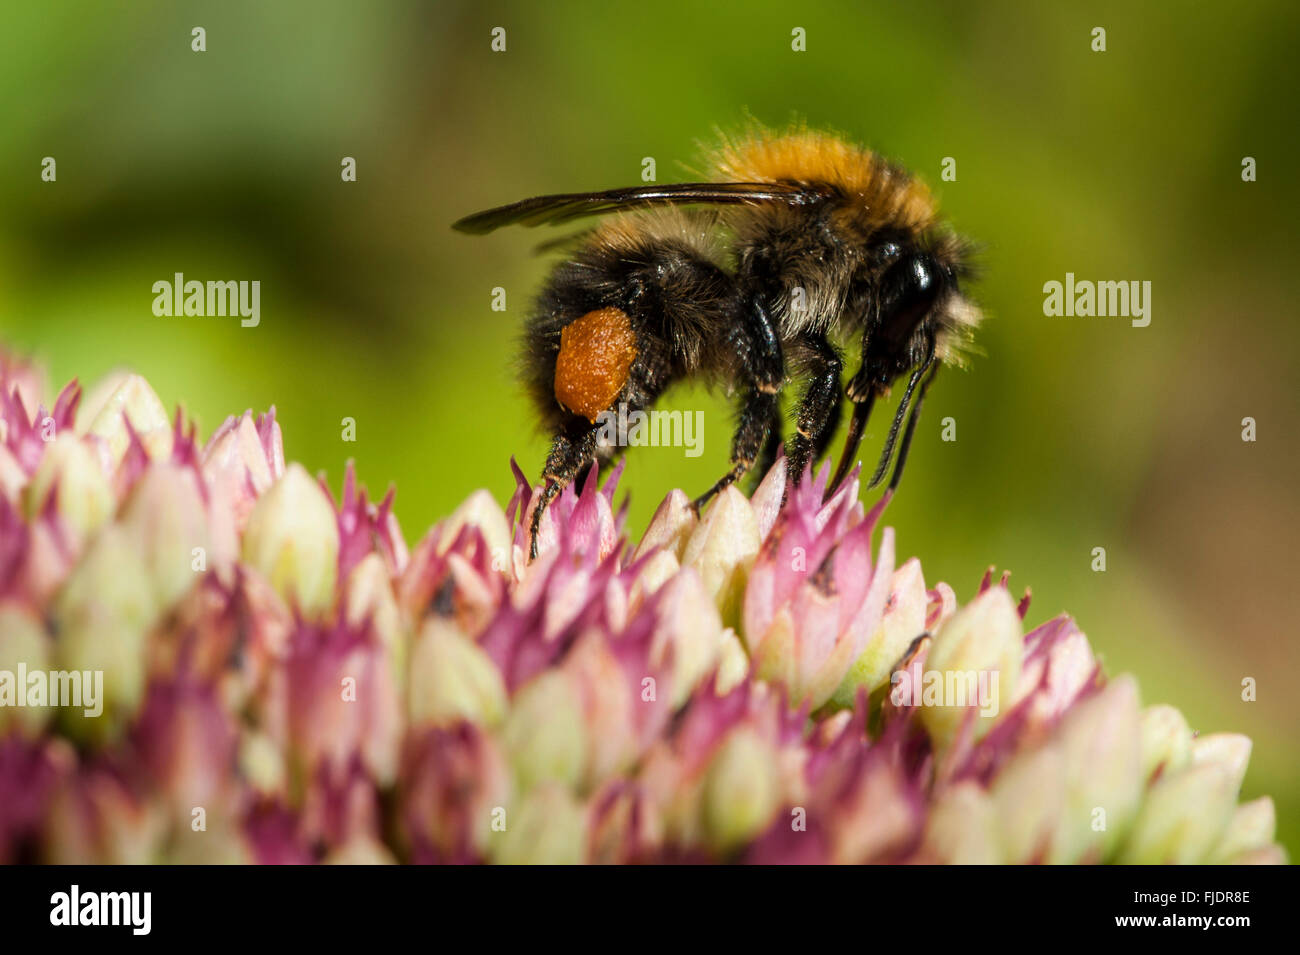 Close-up of a bumble bee - Stock Image